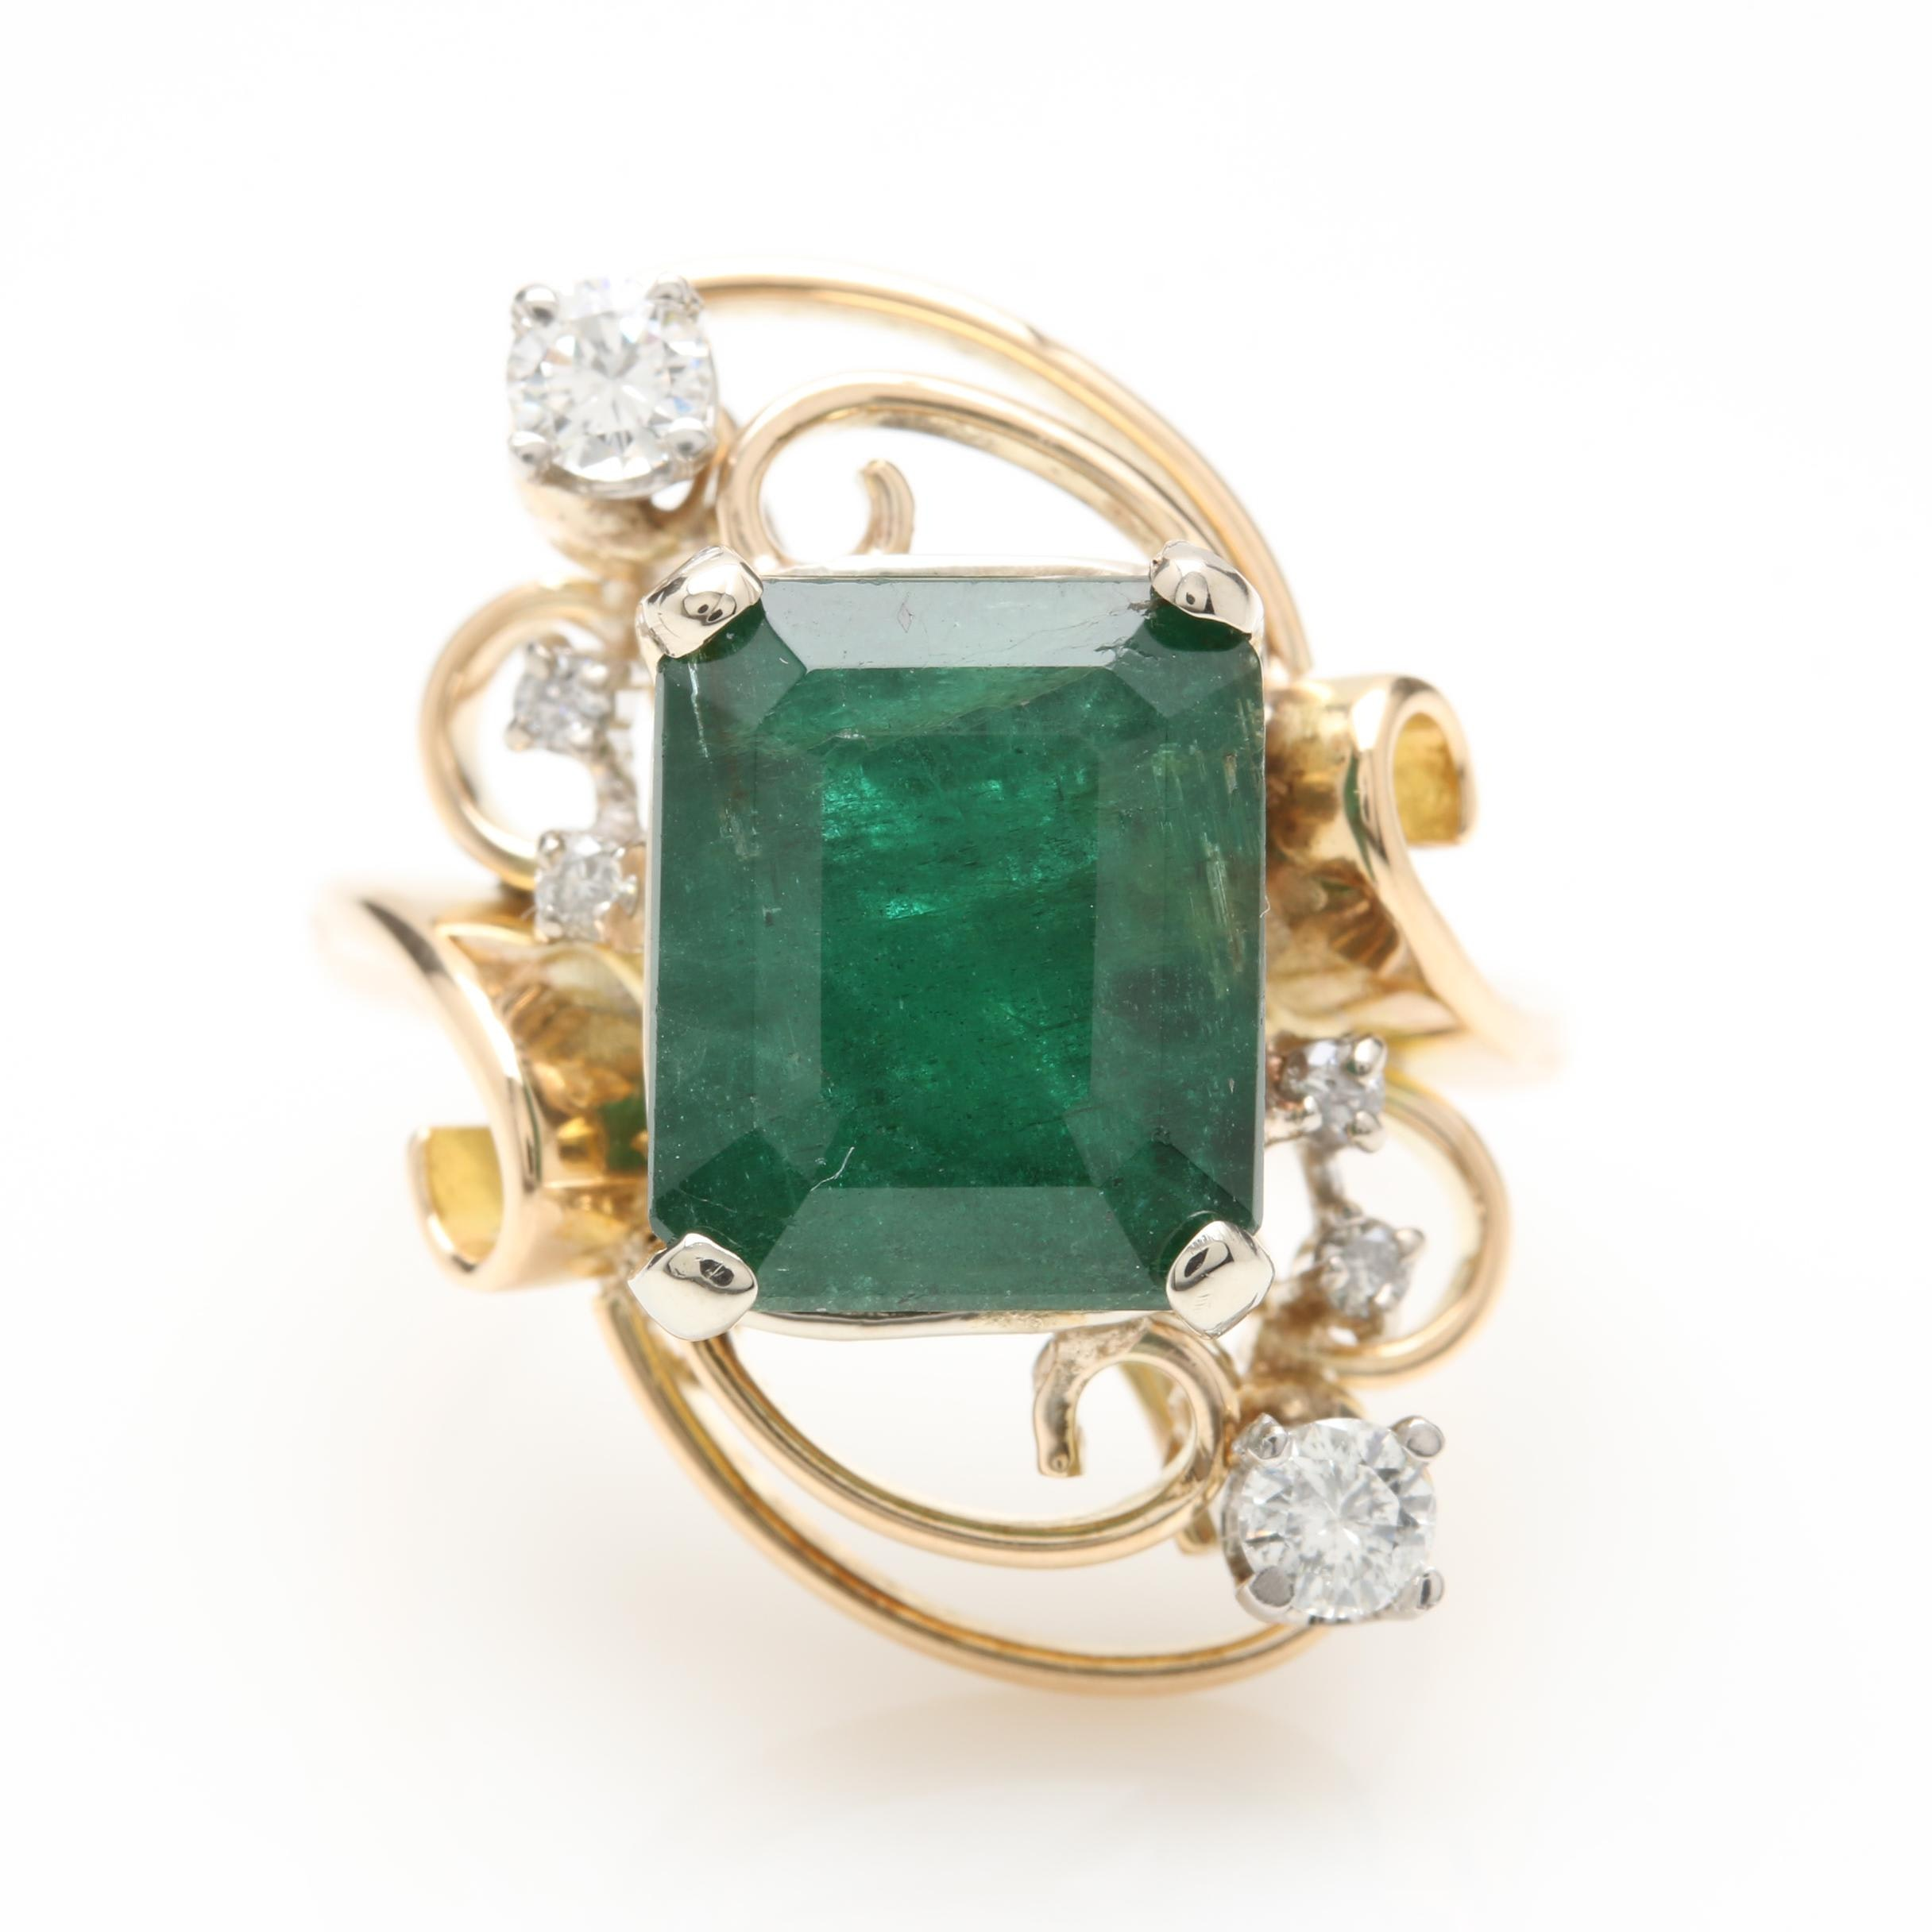 14K Yellow Gold 4.96 CT Emerald and Diamond Ring